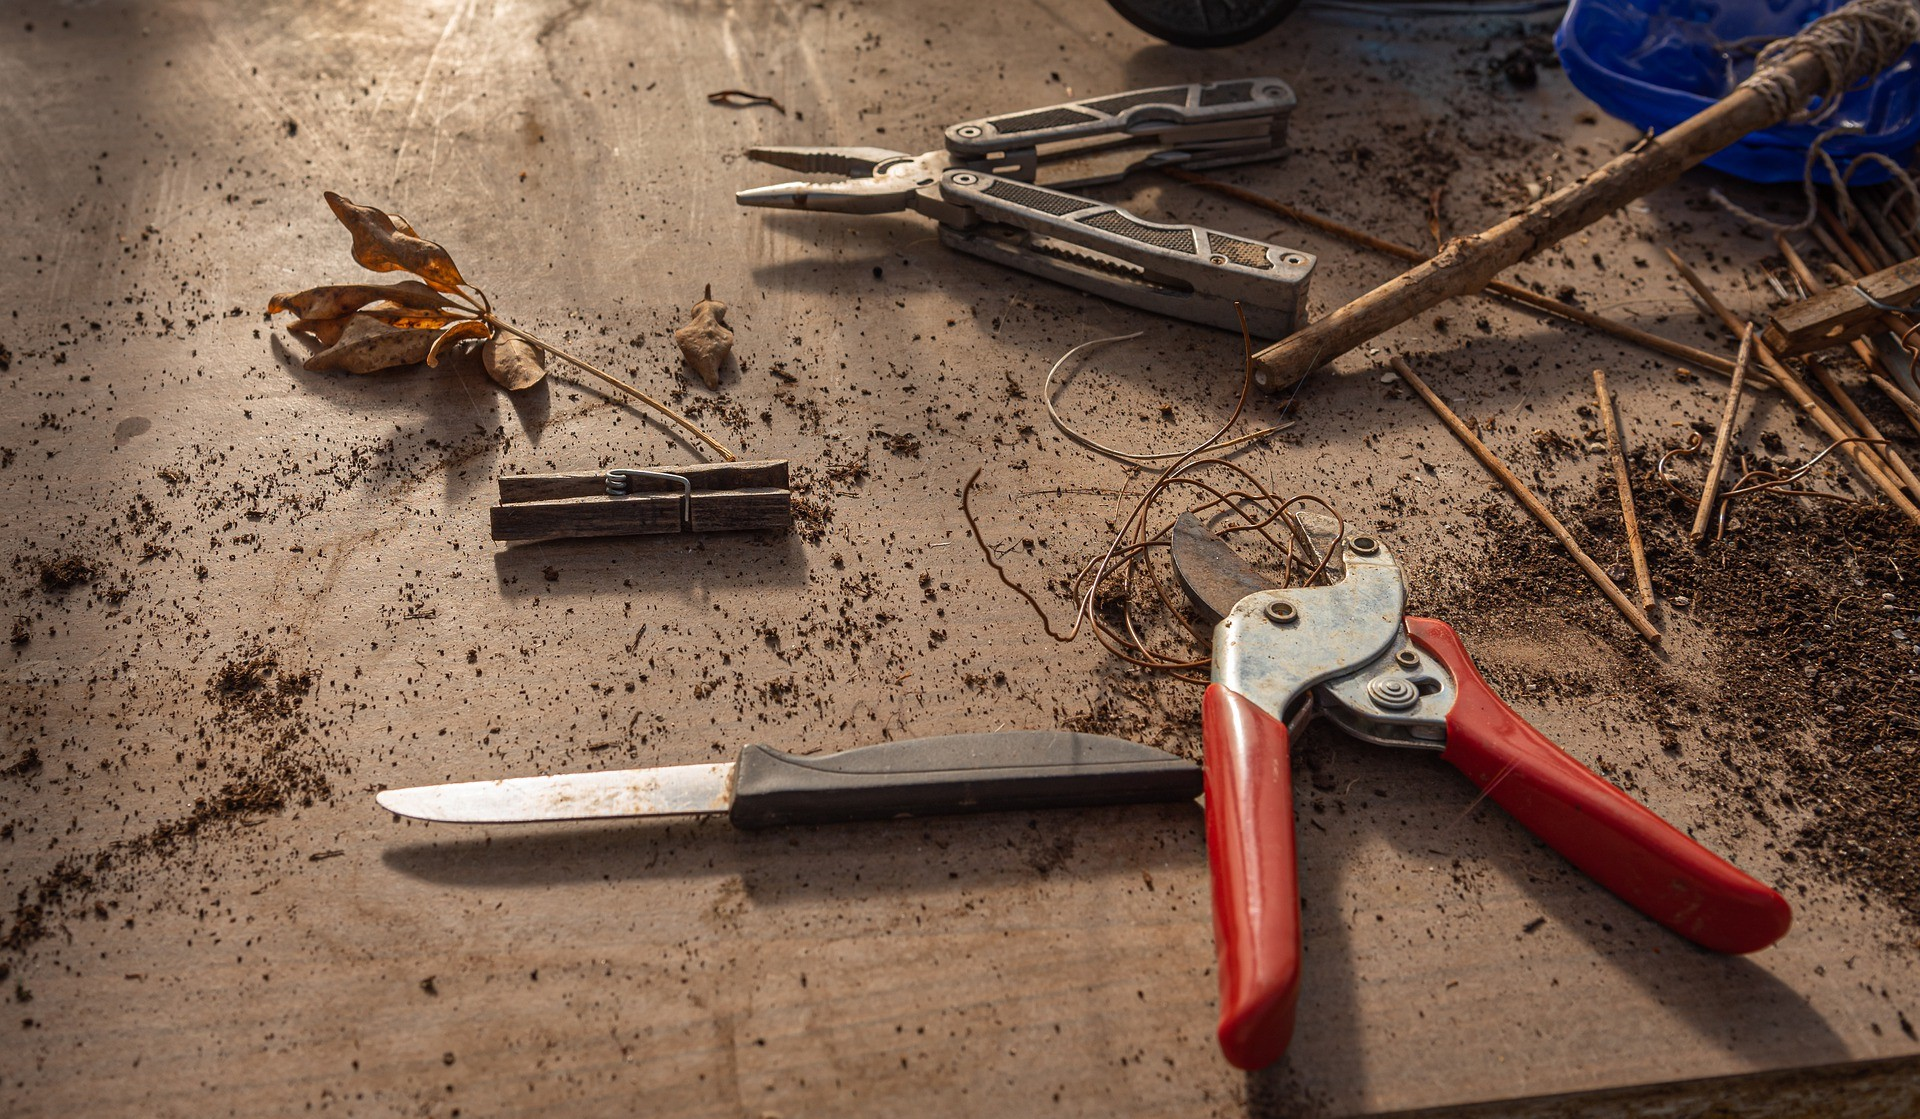 17 Types of the Commonly Used Gardening and Pruning Shears in 2021